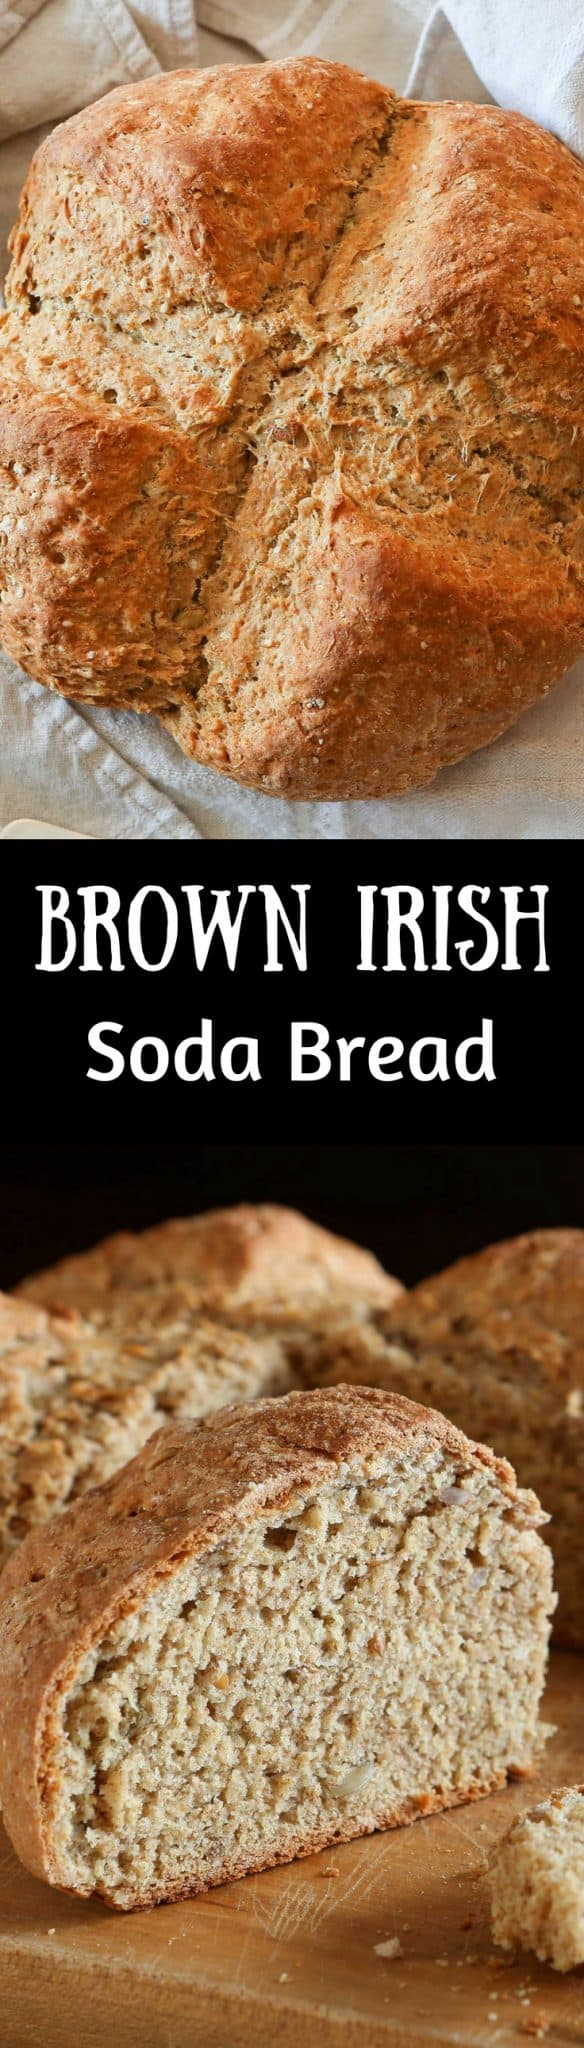 Brown Irish Soda Bread - fresh baked bread with an amazing crust, a nutty, fluffy, soft crumb and a flavor that is often found with harder-to-make yeast breads.  www.savingdessert.com